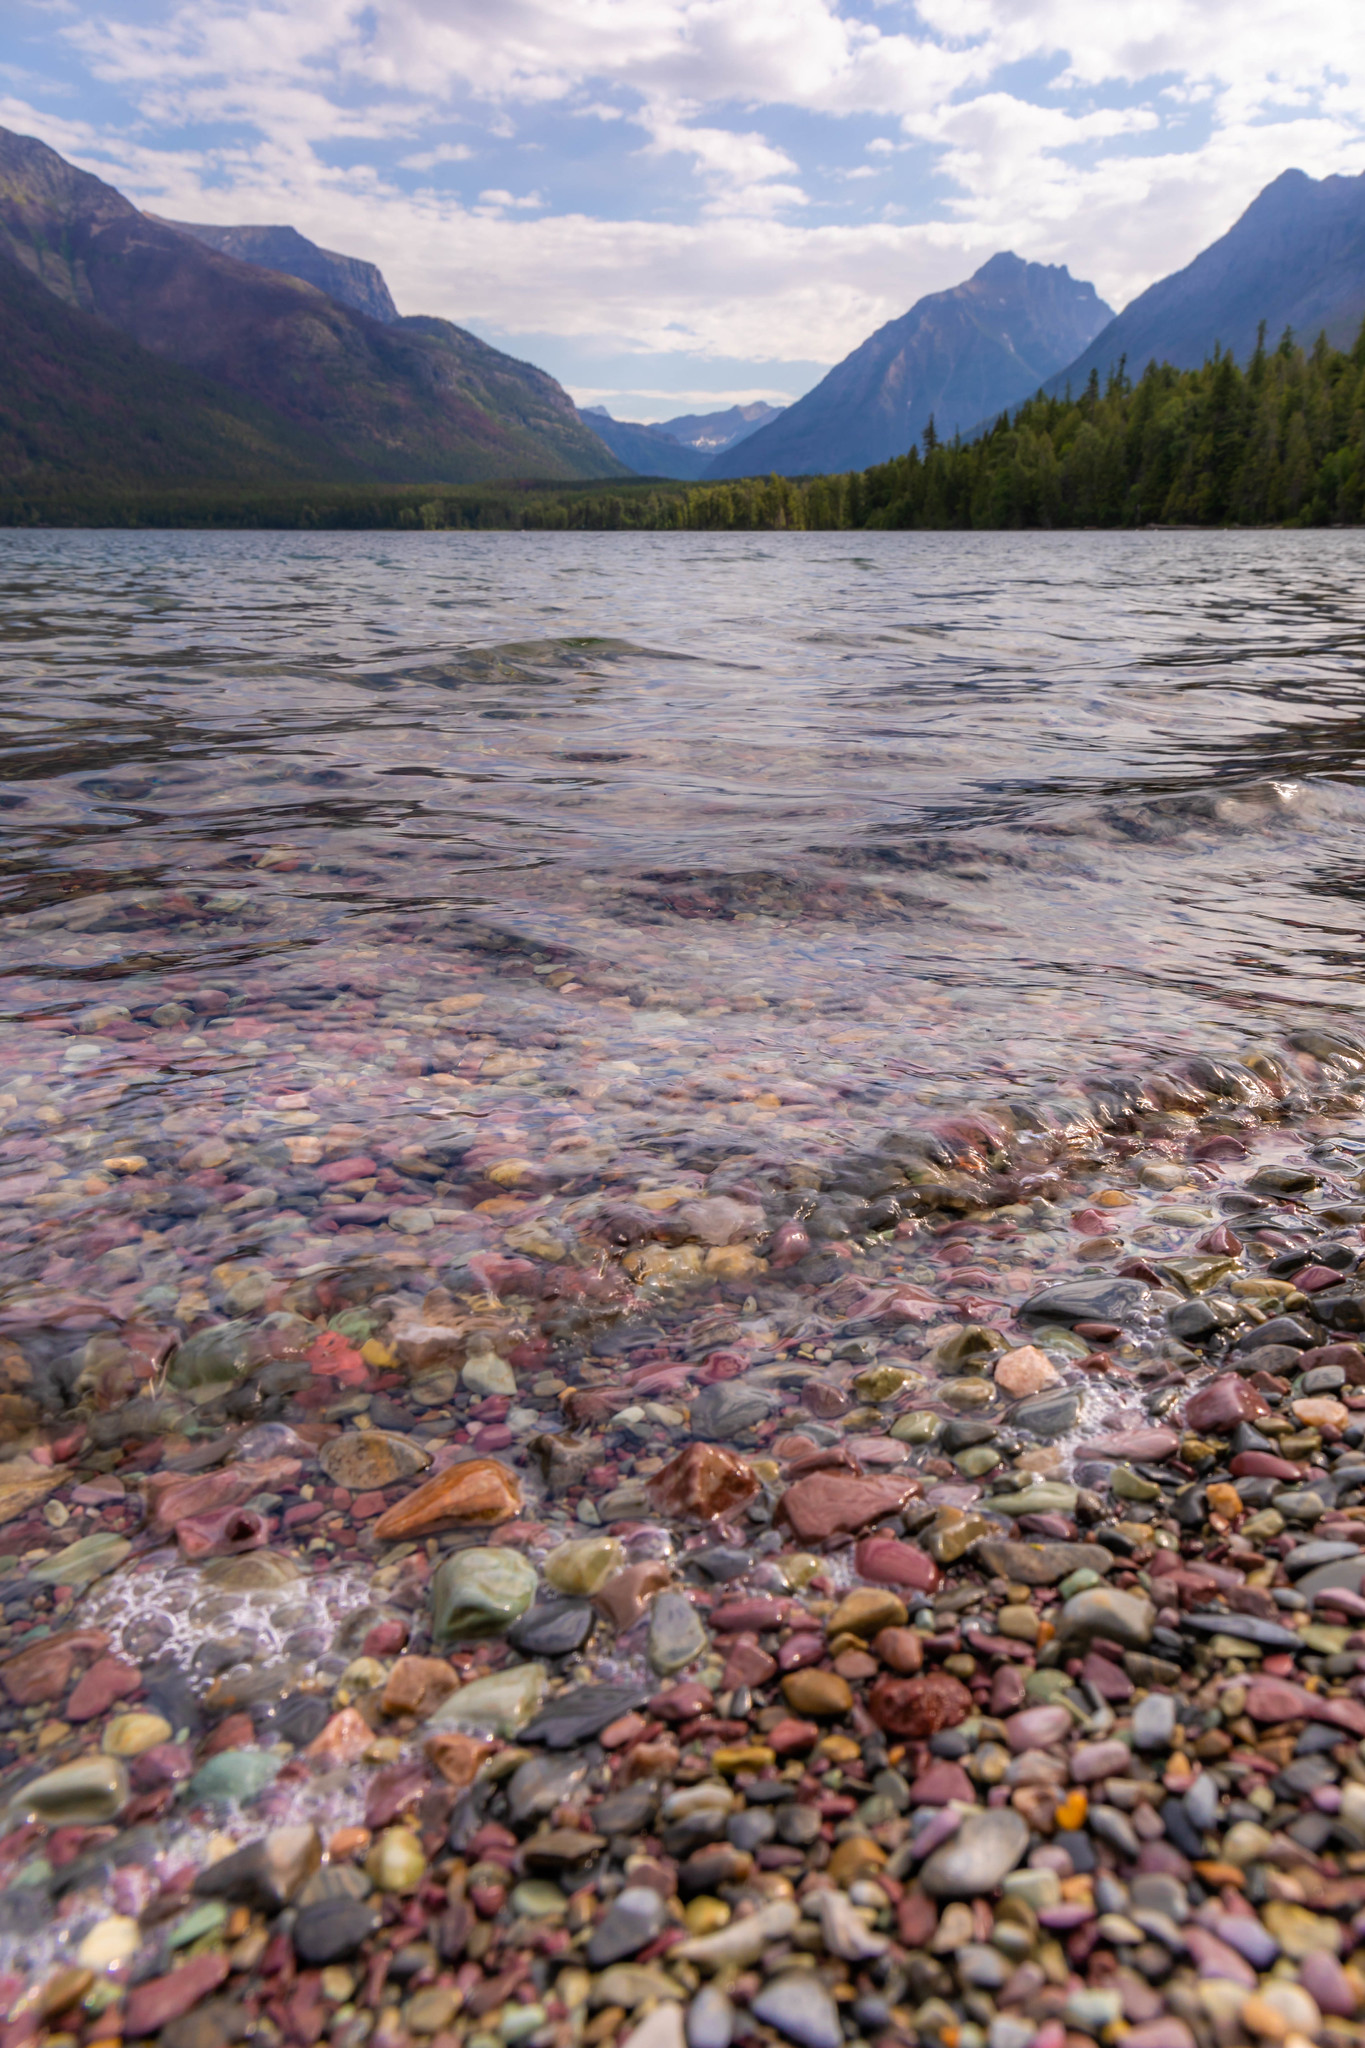 07.02. Glacier National Park